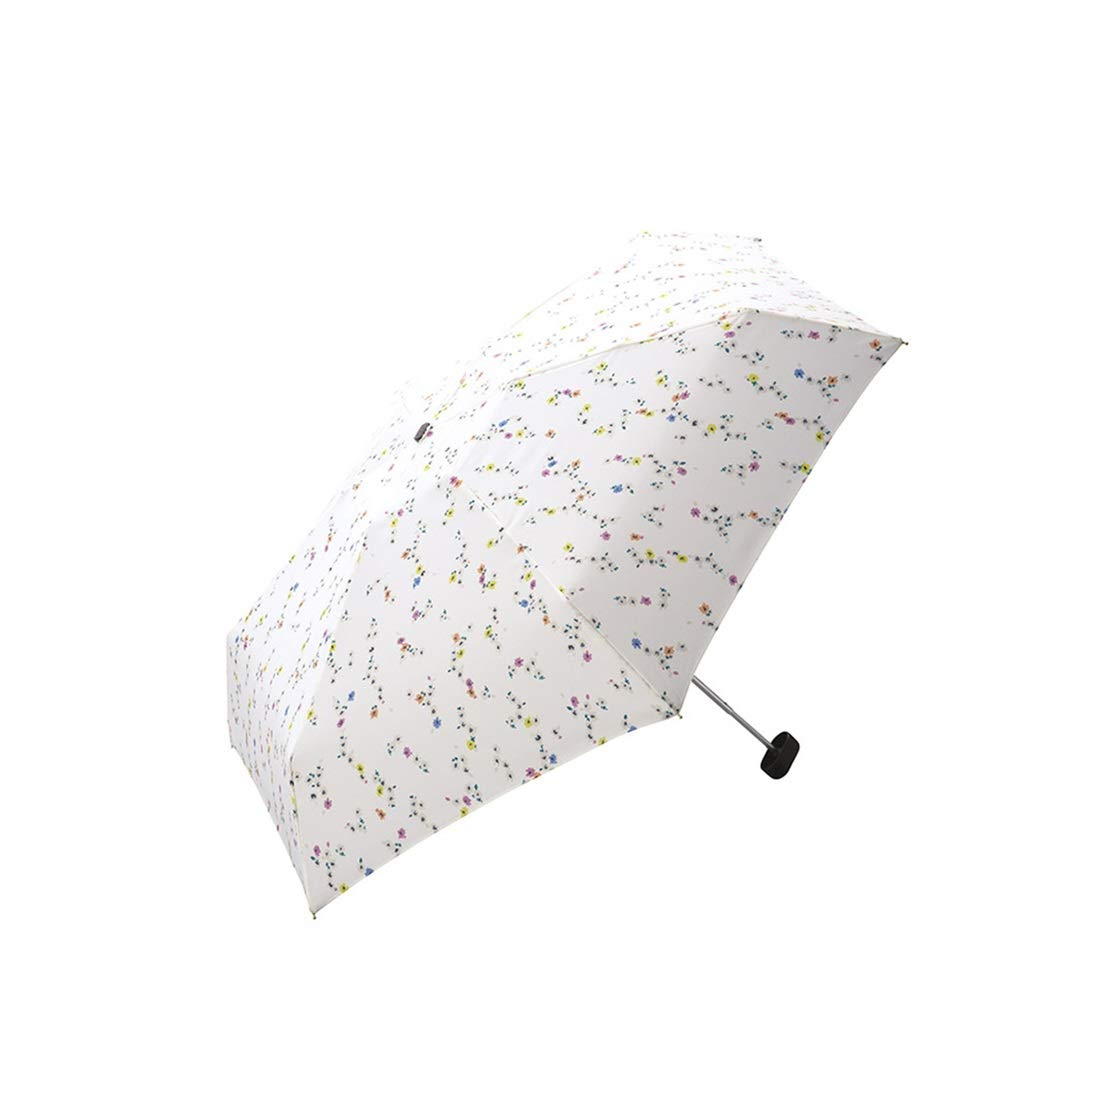 Hexiansheng Folding Umbrellas Travel Umbrellas for Windproof Shades Suitable for Ladies, Men, Children Small and Portable 17cm (Color : Off-White)